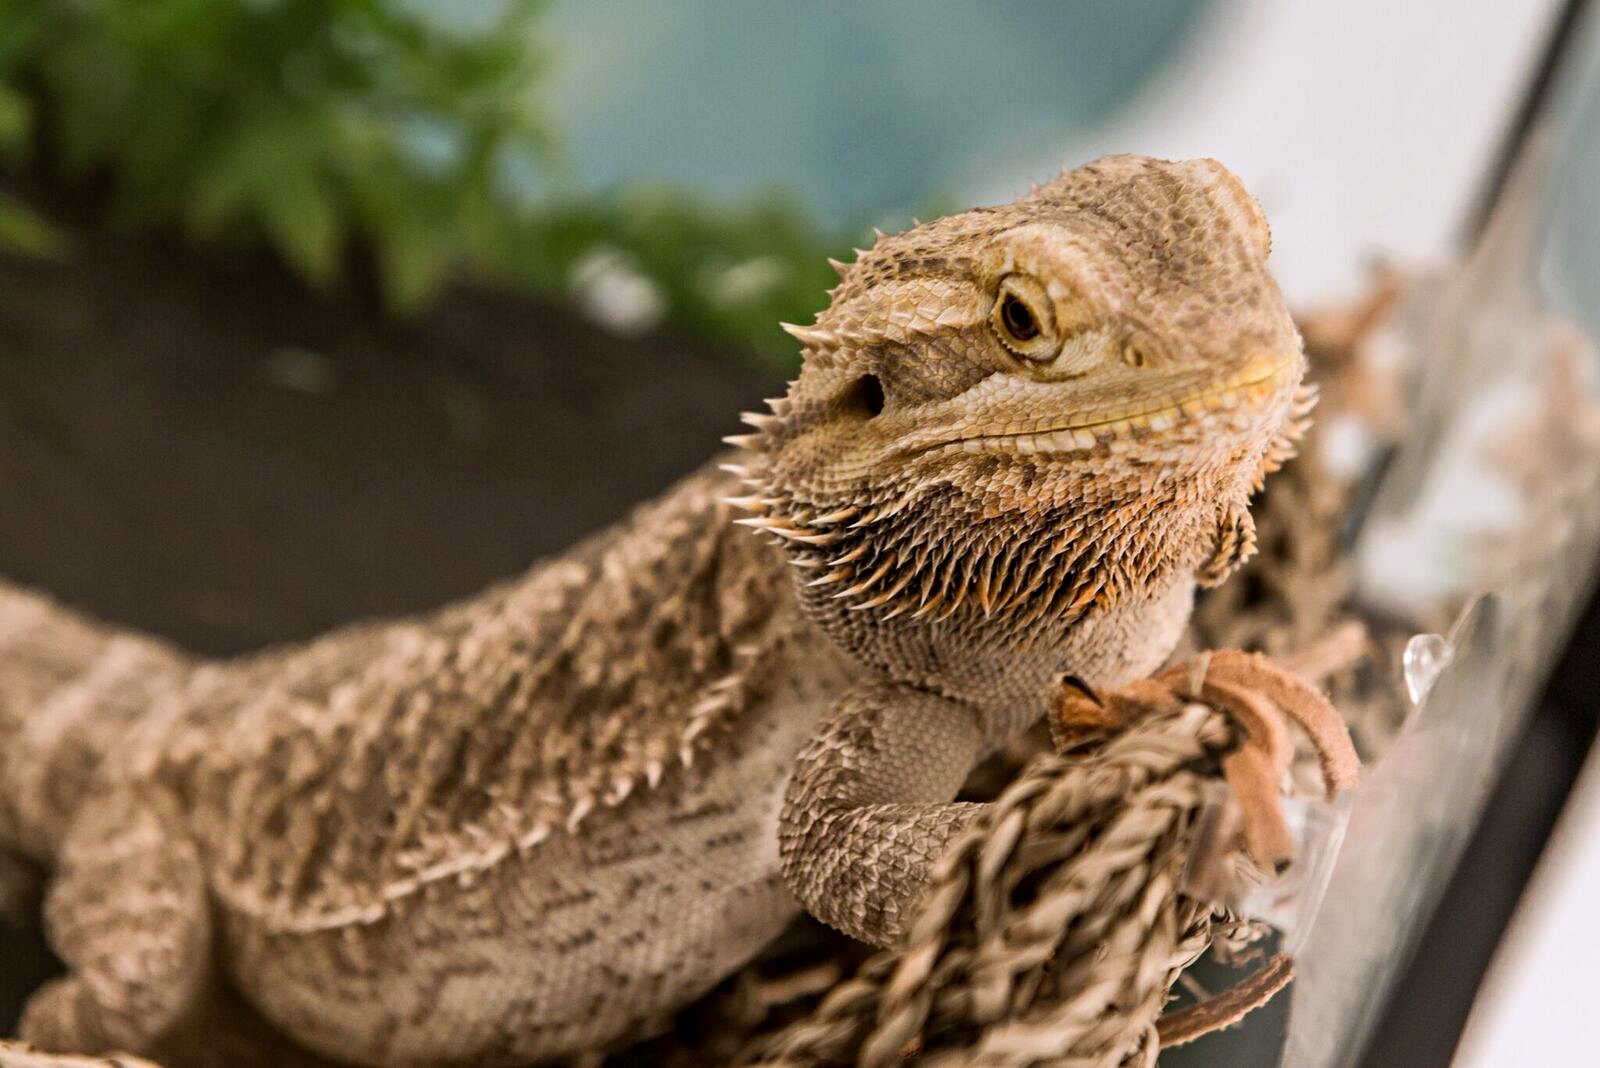 Leo the Lizard Bearded Dragon Kids' Pet Club